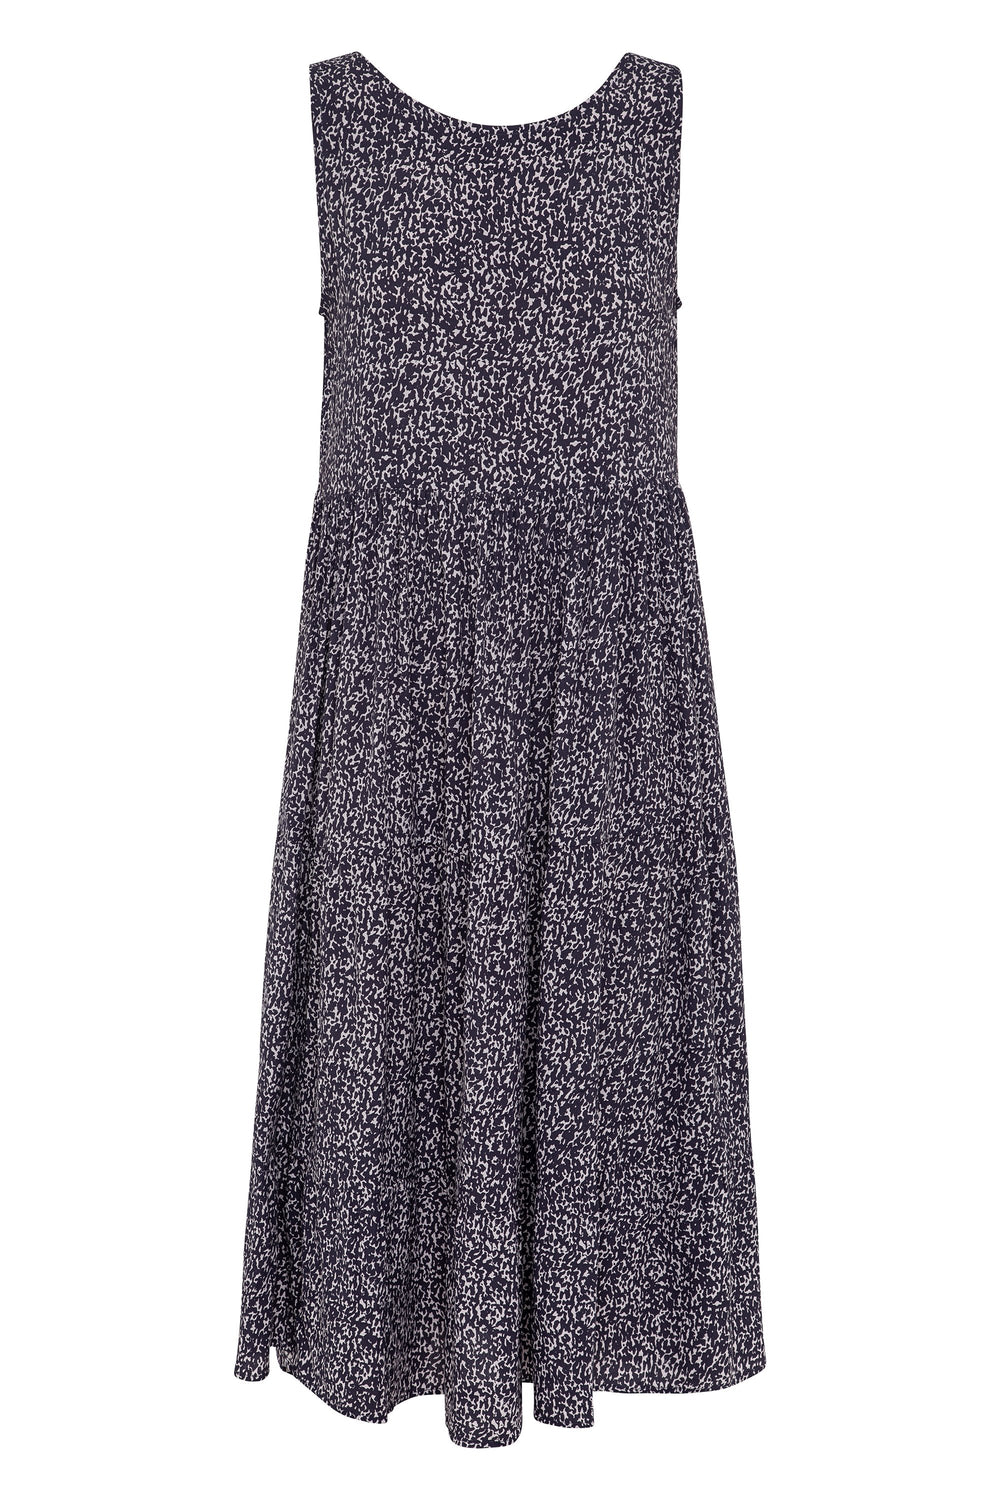 Olivia Midi Dress In Snow Leopard